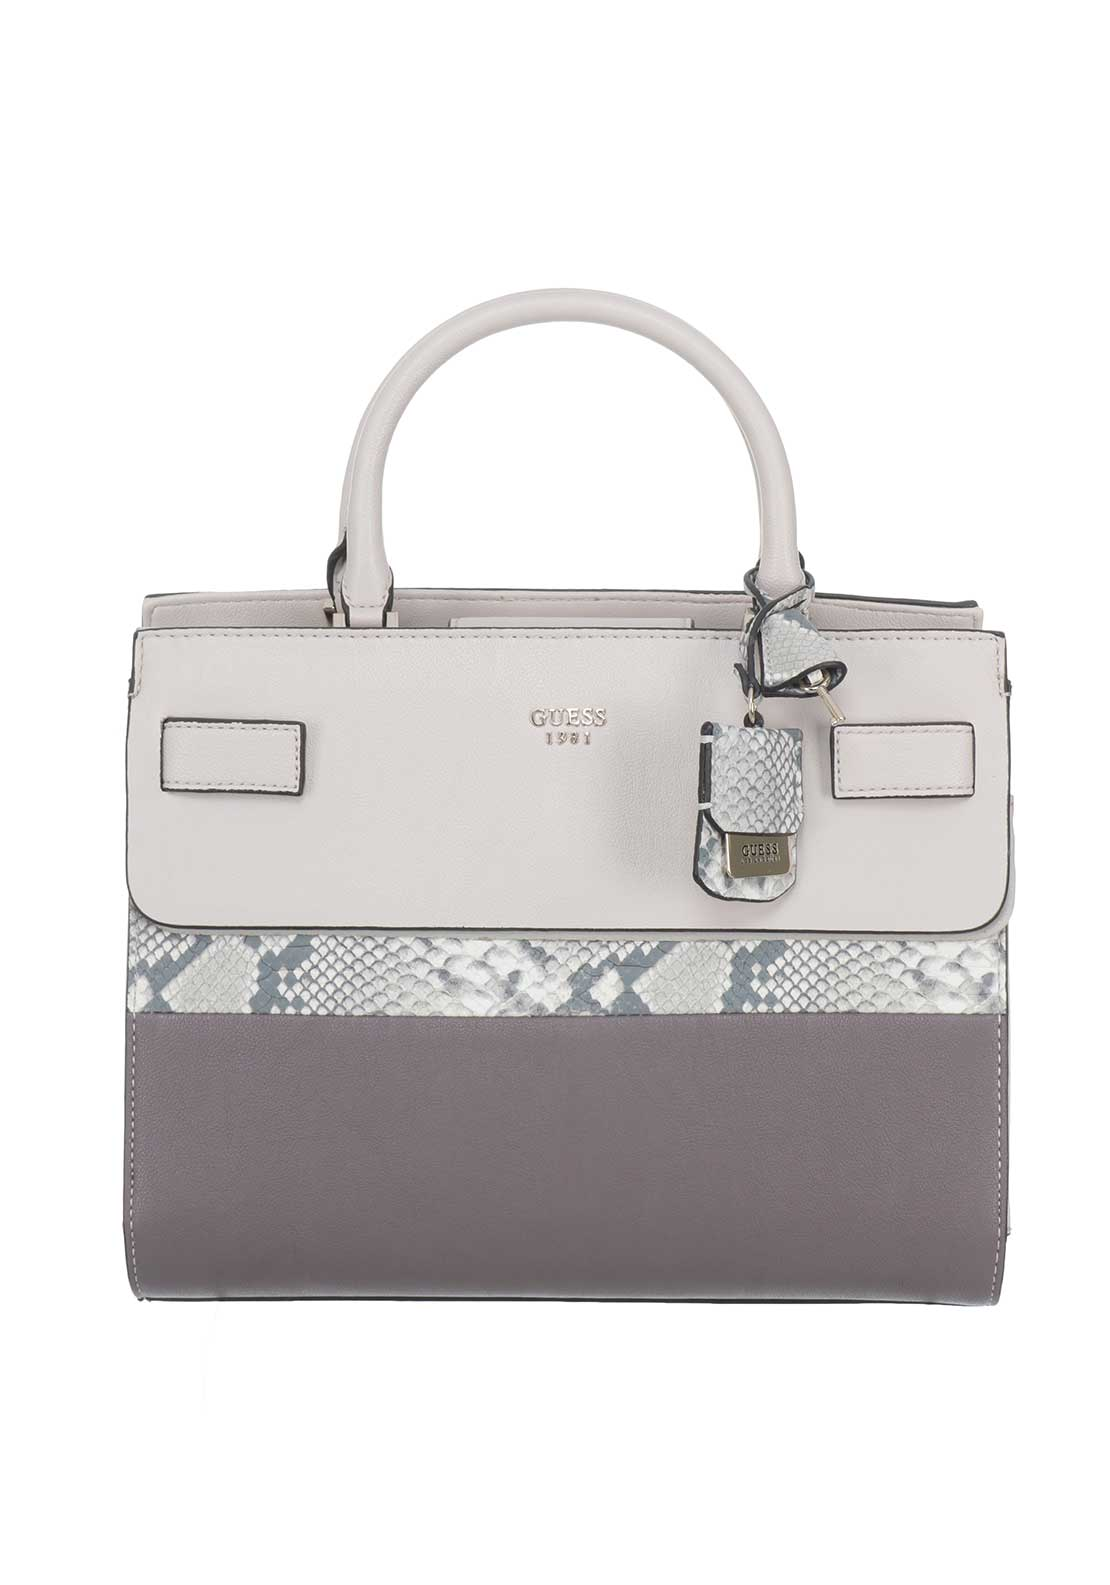 Guess Cate Satchel Bag, Taupe Multi